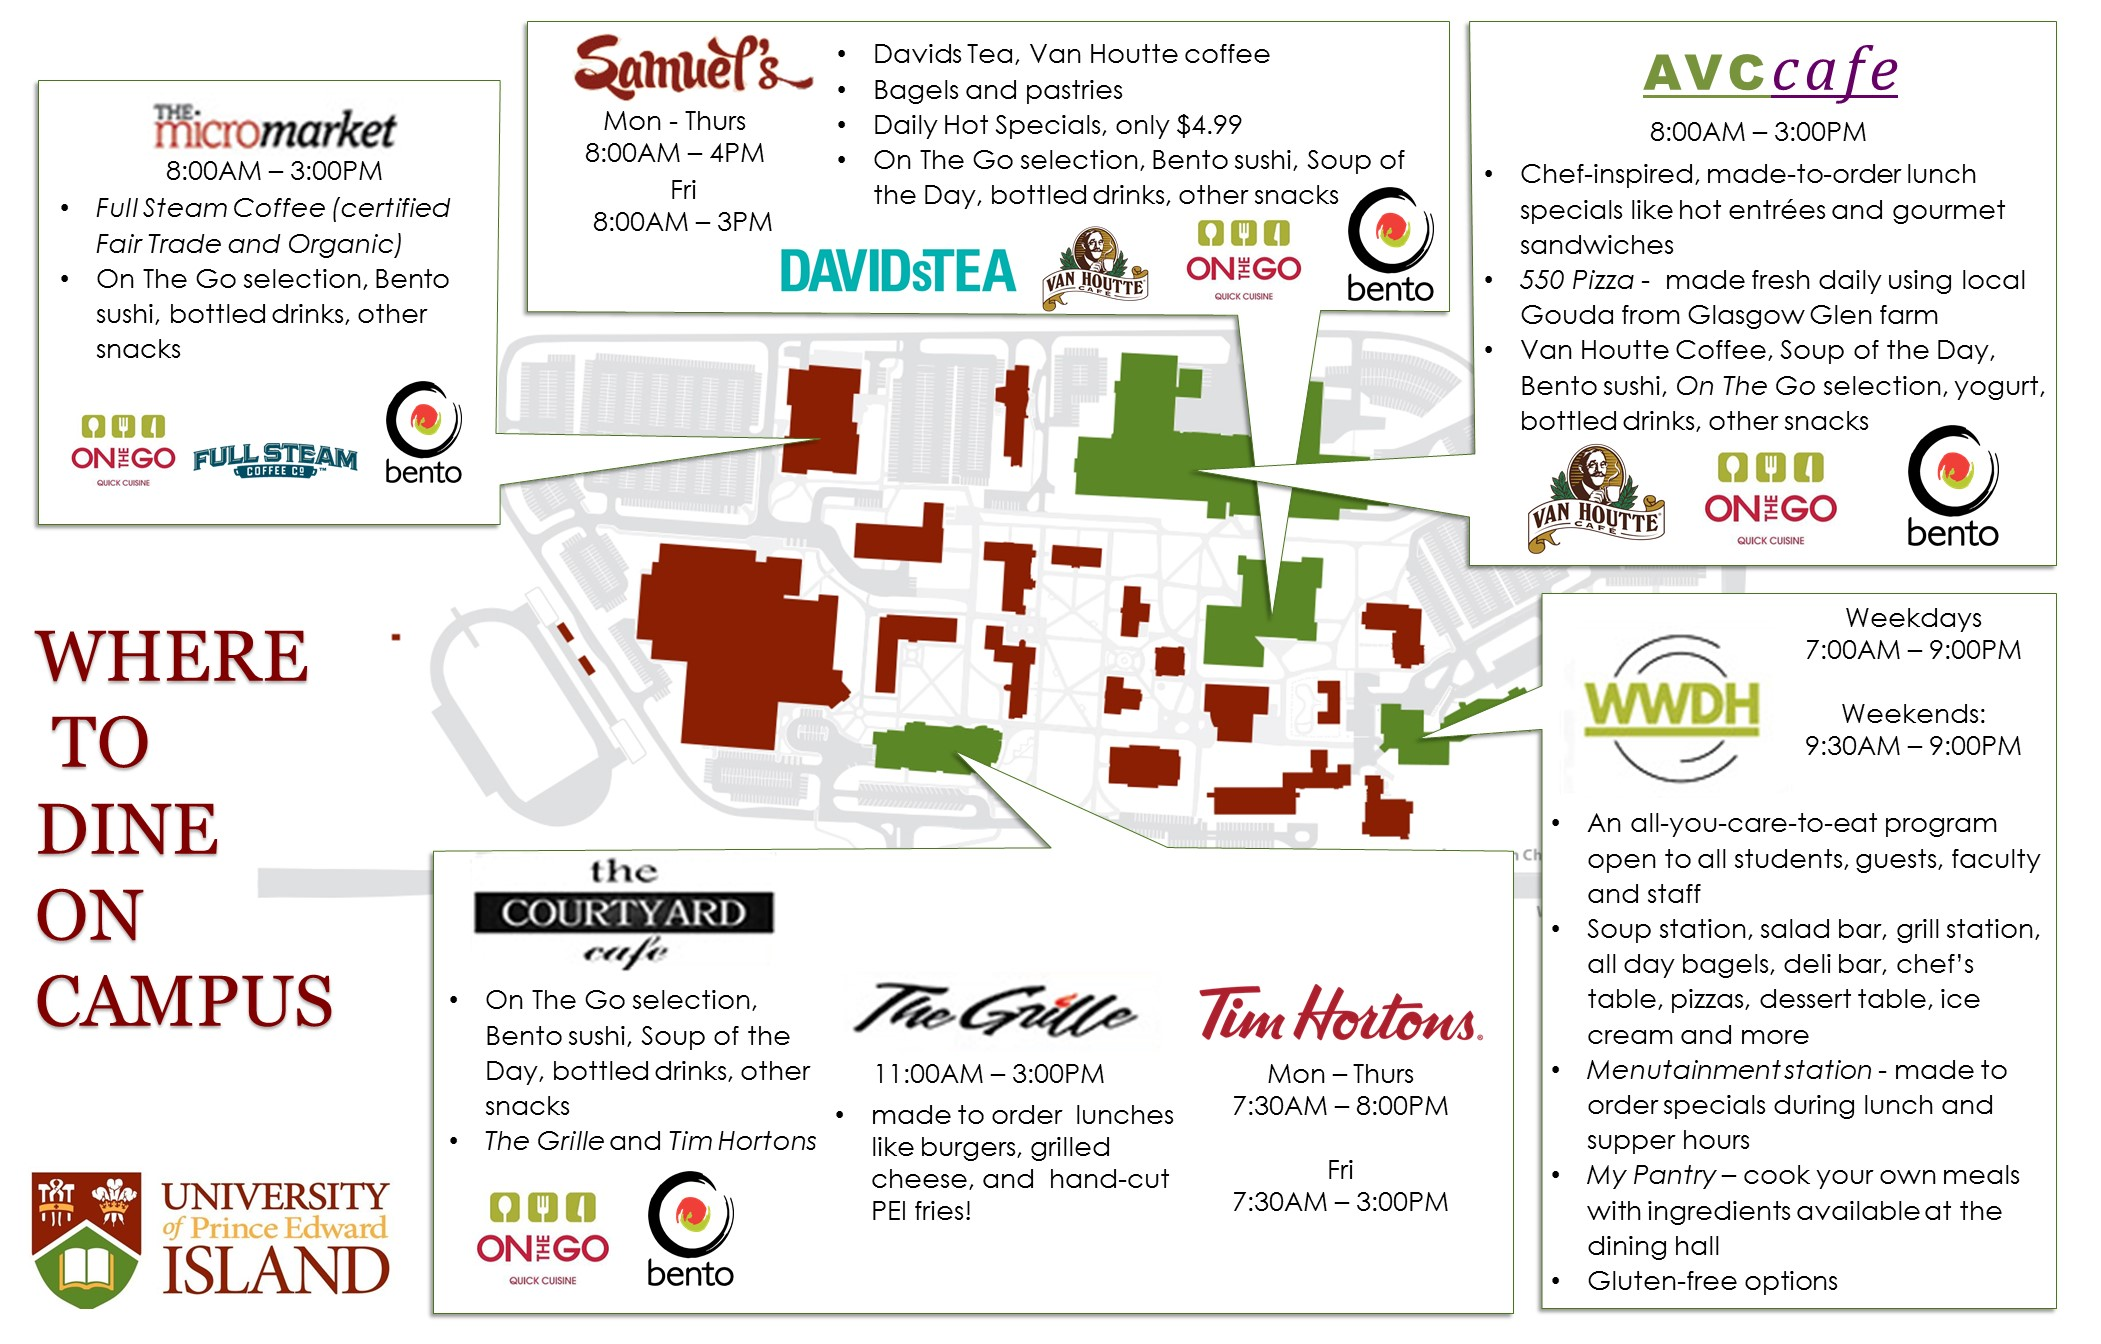 upei dining map